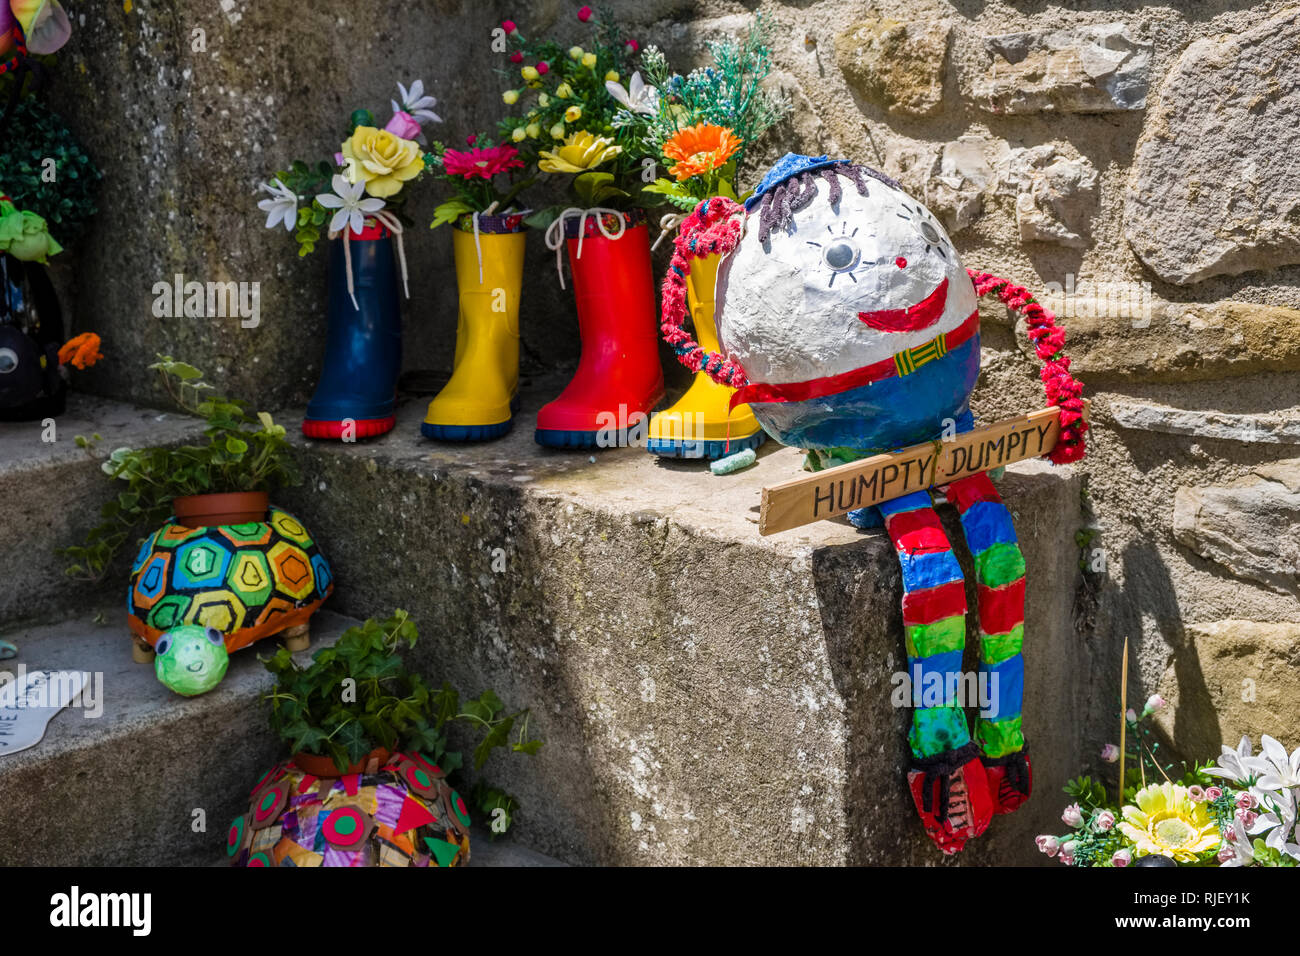 Colorful decoration with rubber shoes, flowers and a puppet at a house entrance - Stock Image